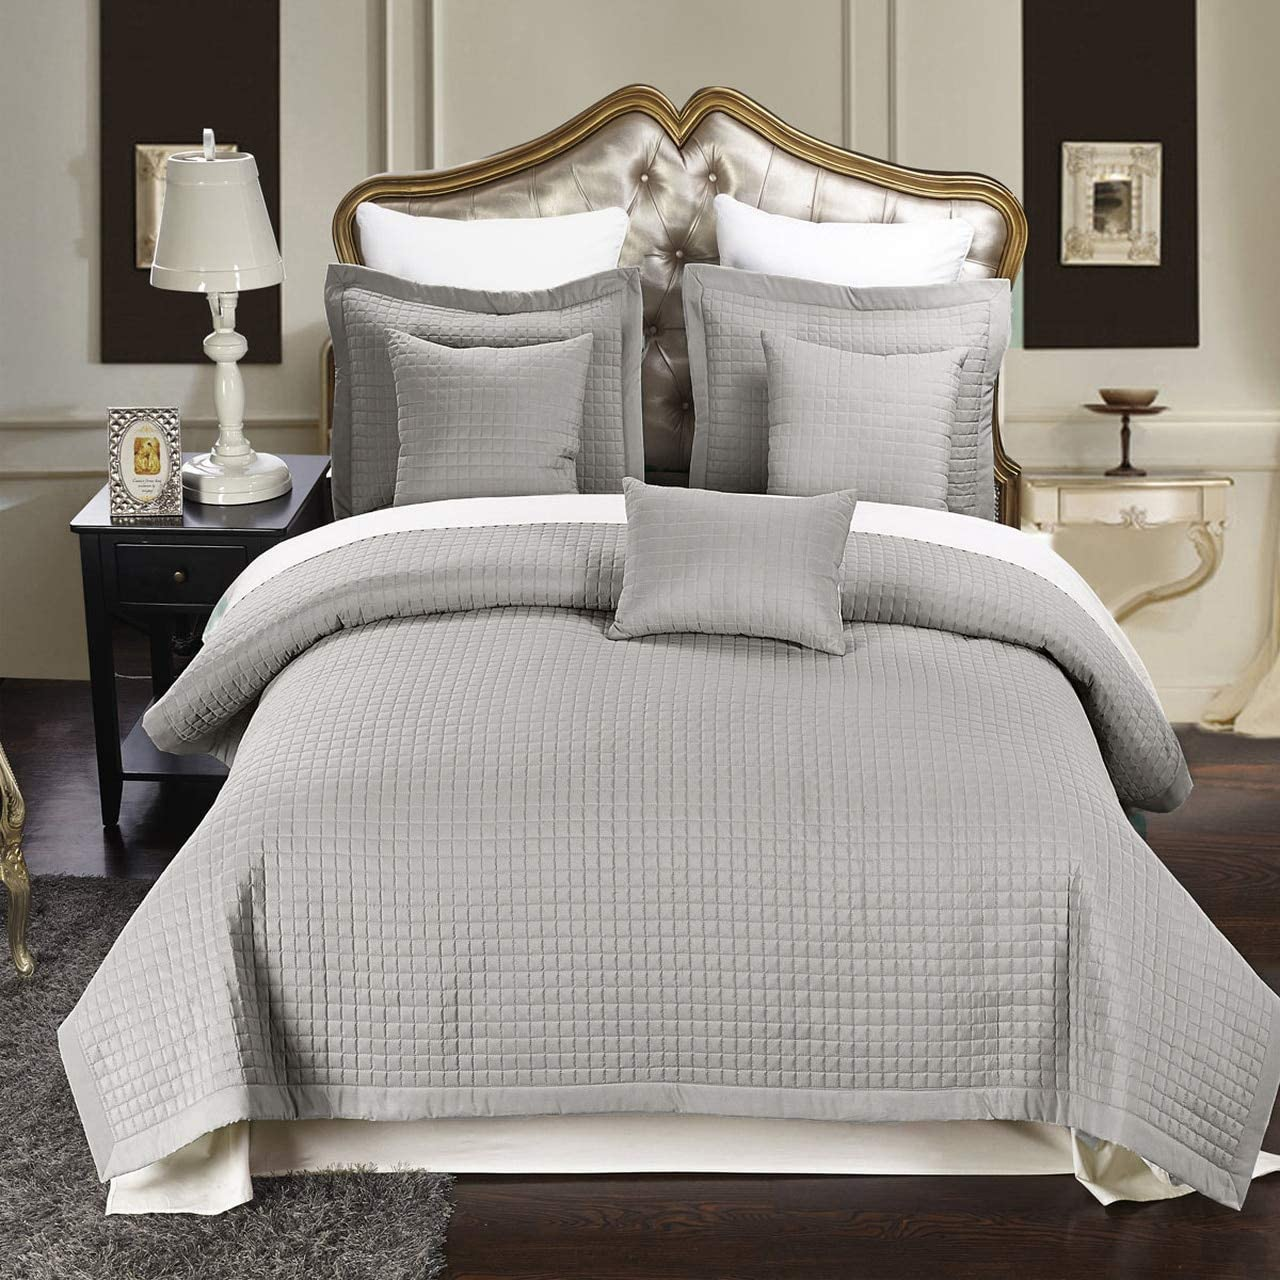 Royal Hotel Checkered Style Soft and Plush Coverlet, 2PC Set Stiched Filled Bedspread, Extra Soft Bed Cover, Checkered Pattern Quilted Bed Quilt, Gray, Twin XL, Twin